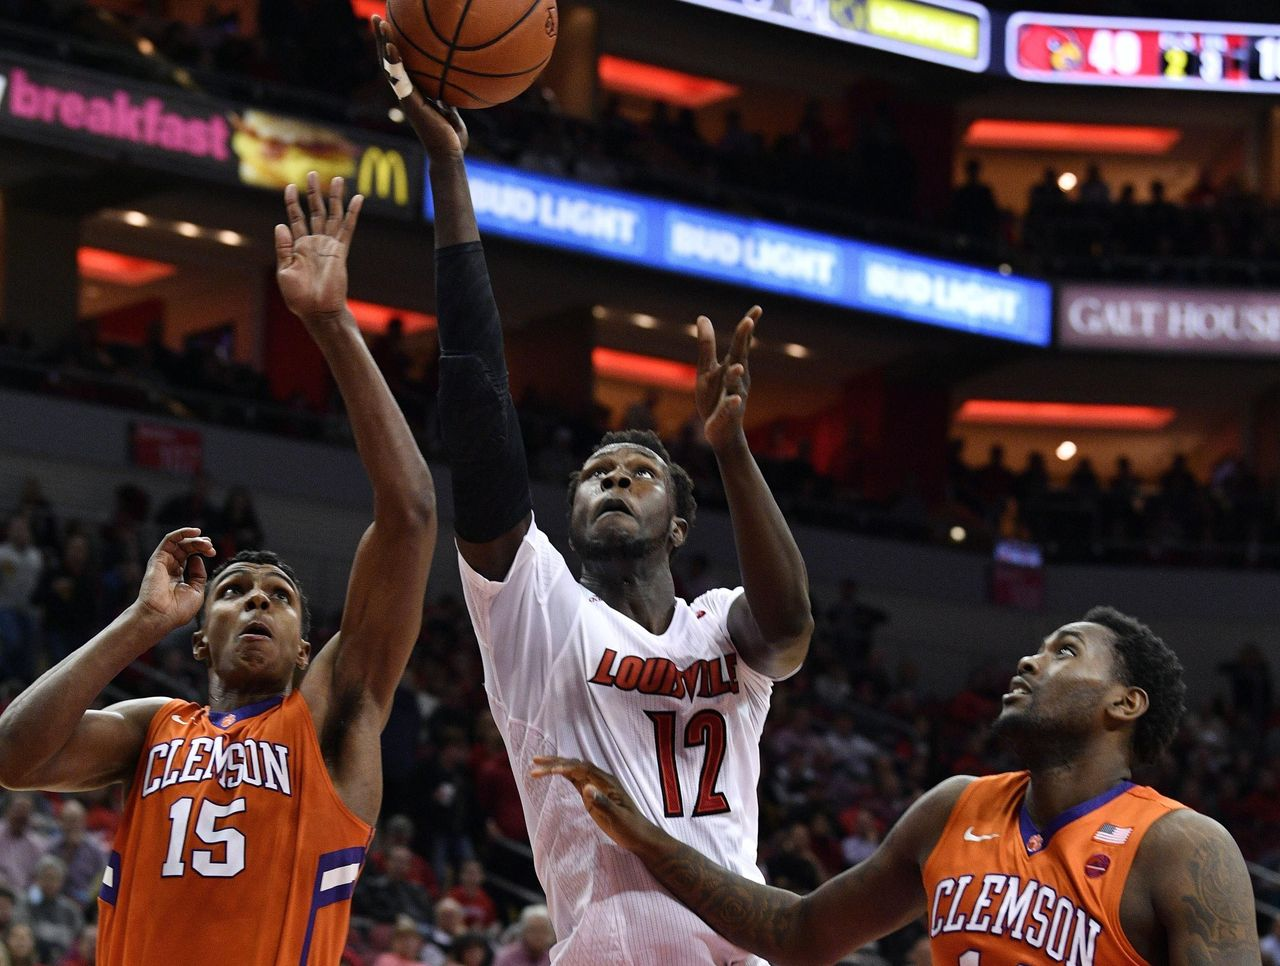 Cropped_2017-01-20t041422z_819877667_nocid_rtrmadp_3_ncaa-basketball-clemson-at-louisville